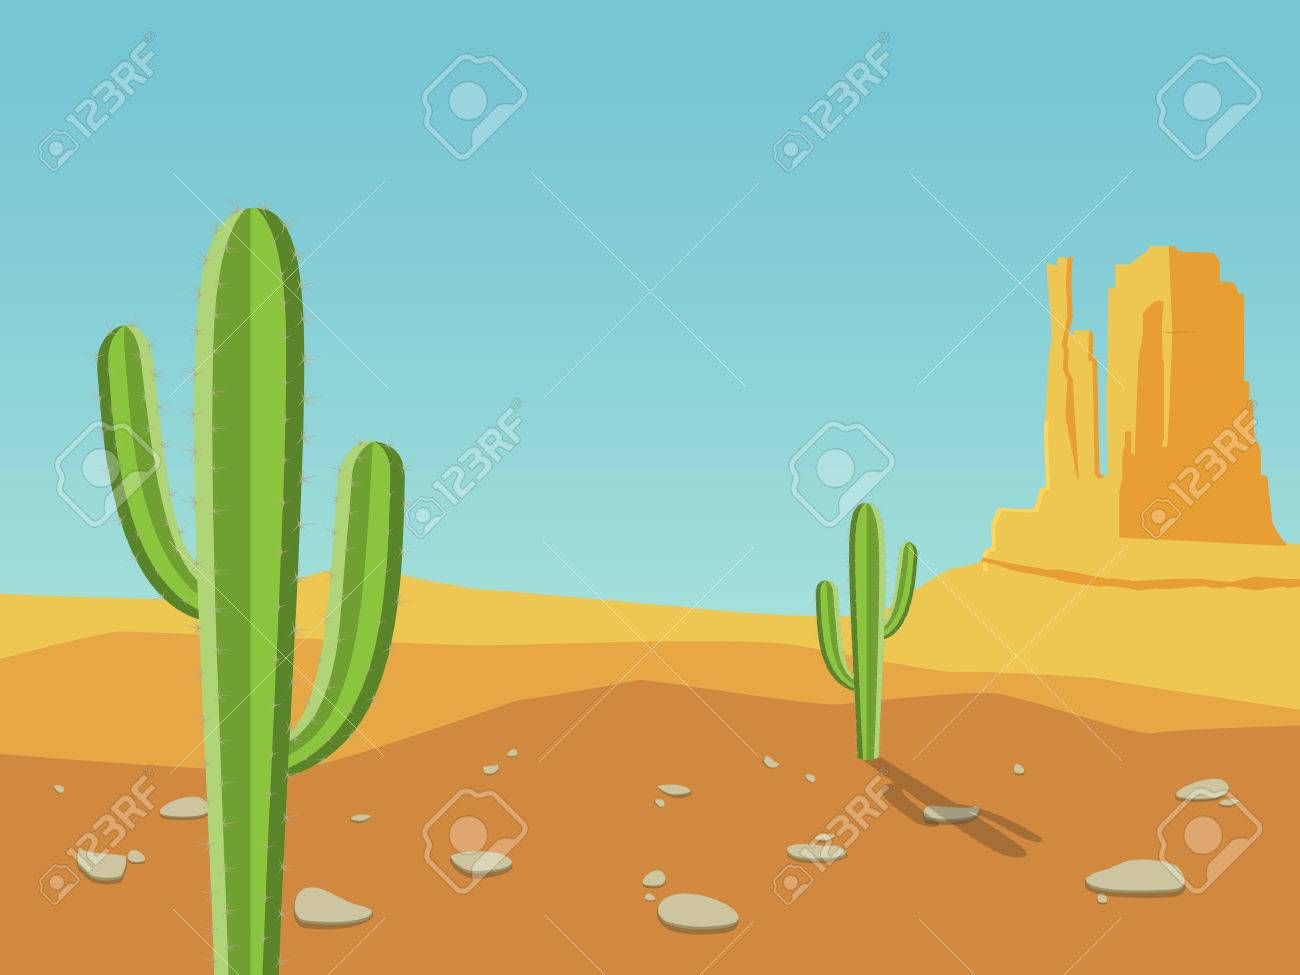 Cactus Porn Dibujo desert landscape with mountains and cactus. cartoon vector illustration.